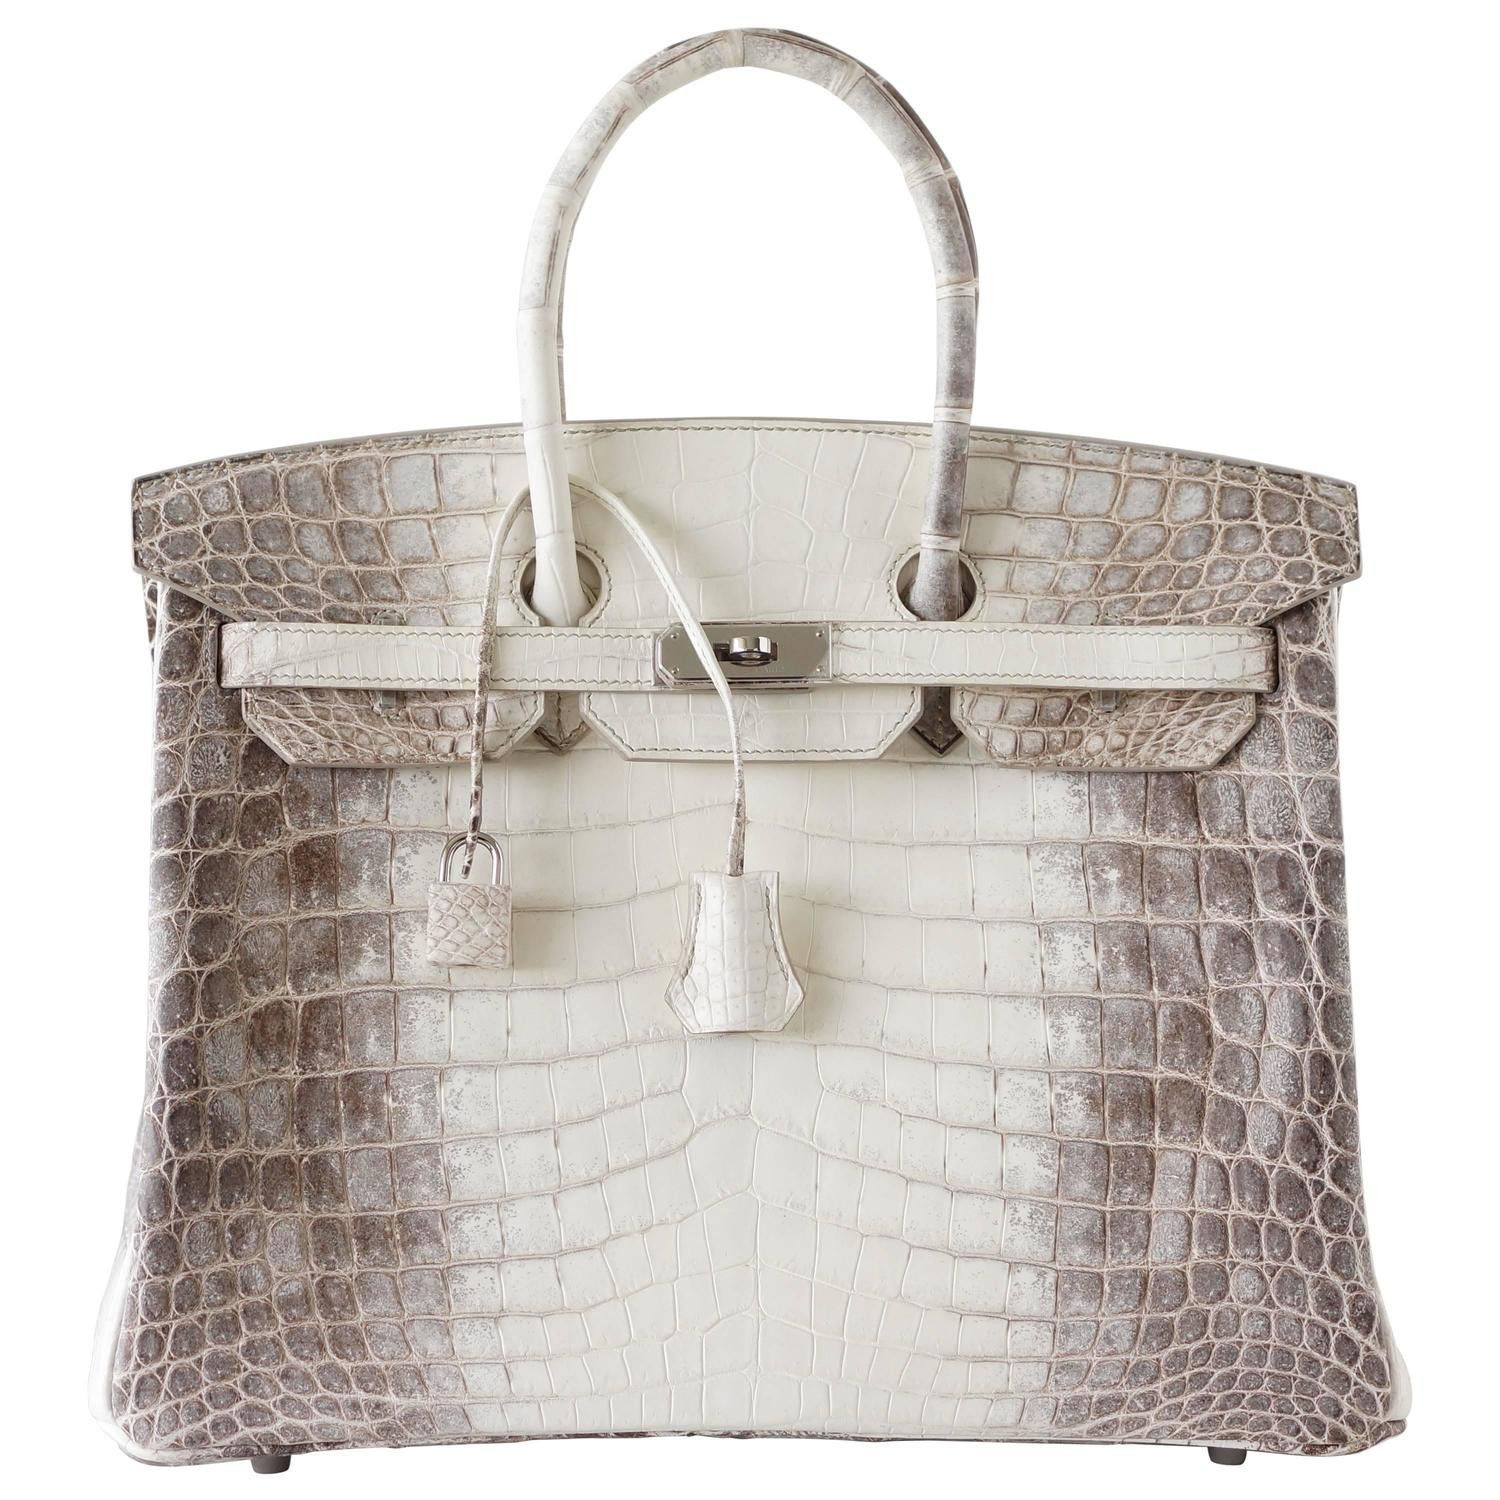 Hermes Birkin 35 Bag Blanc Himalaya Exquisite Skin Limited Edition